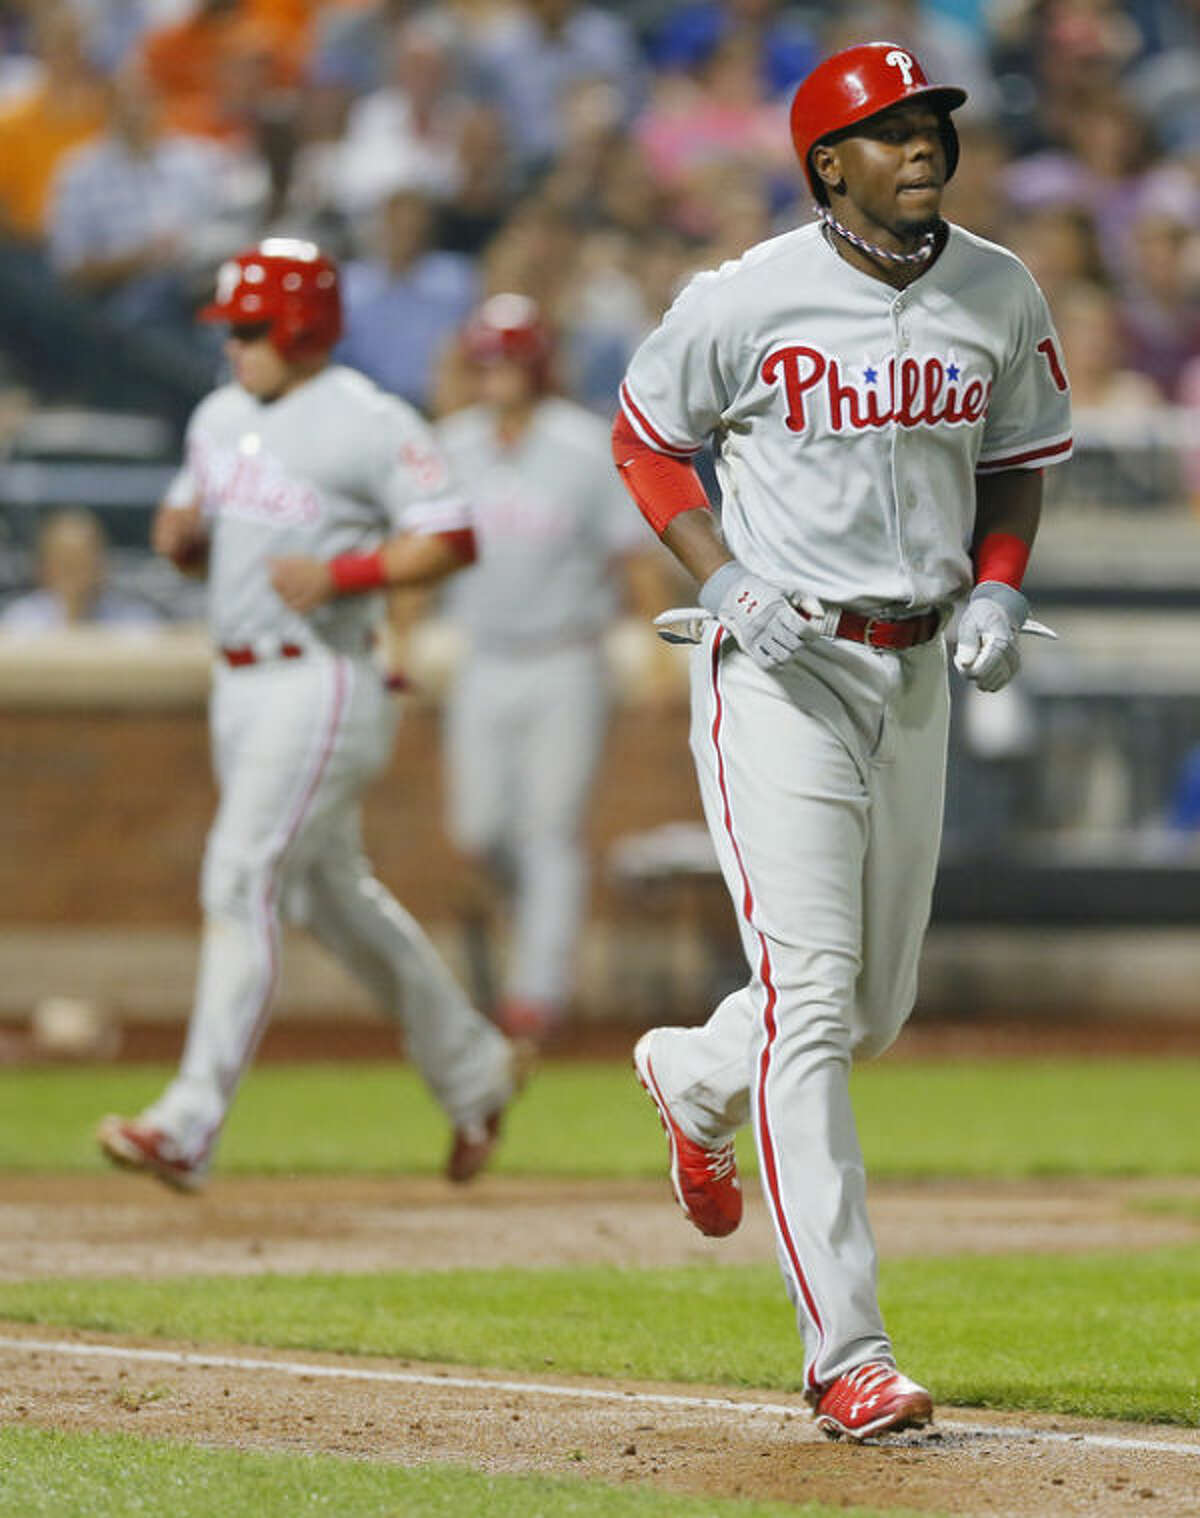 Philadelphia Phillies' John Mayberry Jr. walks to first base after being hit by a pitch with the bases loaded by New York Mets starting pitcher Daisuke Matsuzaka (16) as Phillies' Carlos Ruiz trots home with a run in the background in the fifth inning of a baseball game at Citi Field in New York, Wednesday, Aug. 28, 2013. (AP Photo/Paul J. Bereswill)